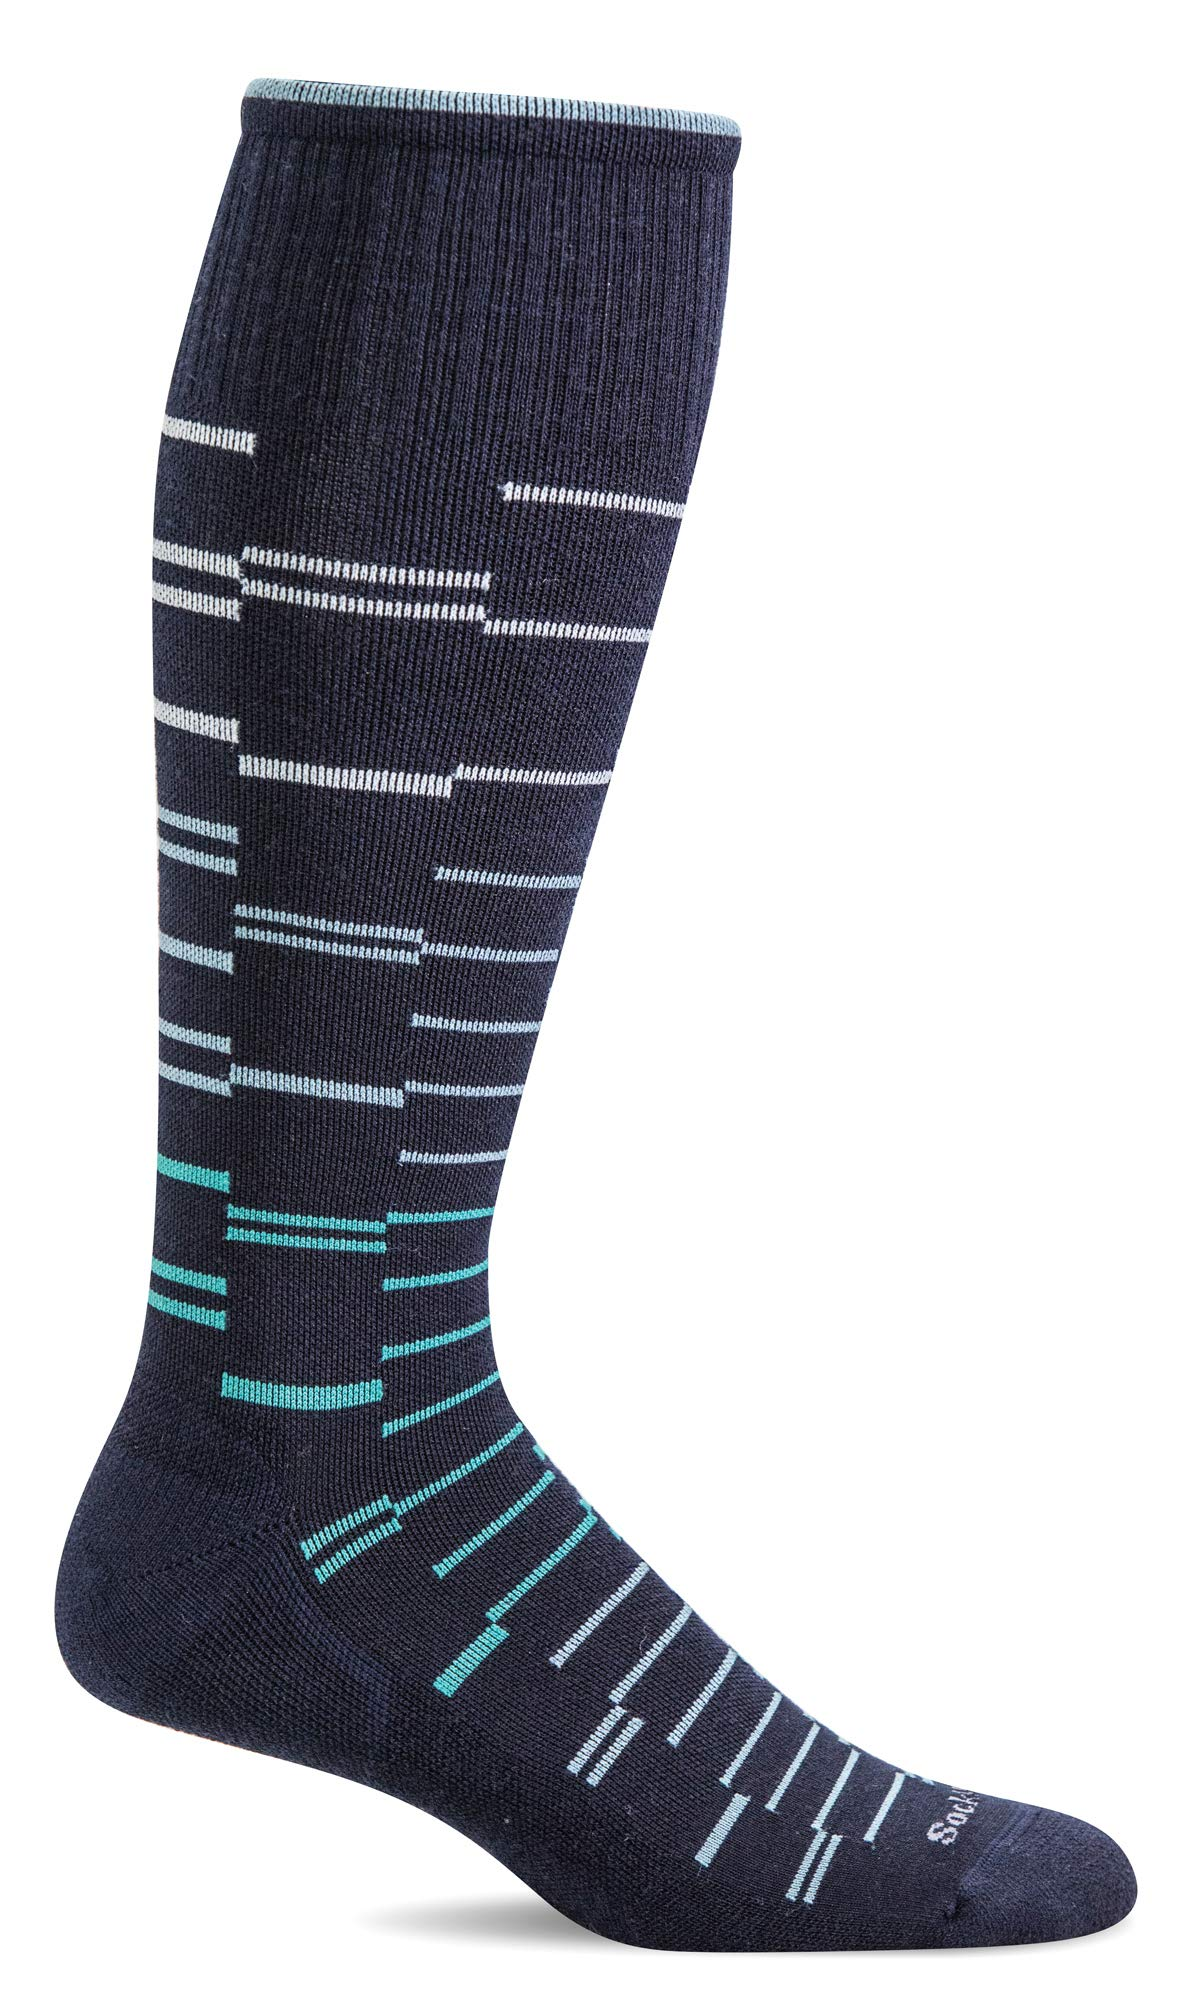 Sockwell Men's Dashing Moderate Graduated Compression Sock, Navy - M/L by Sockwell